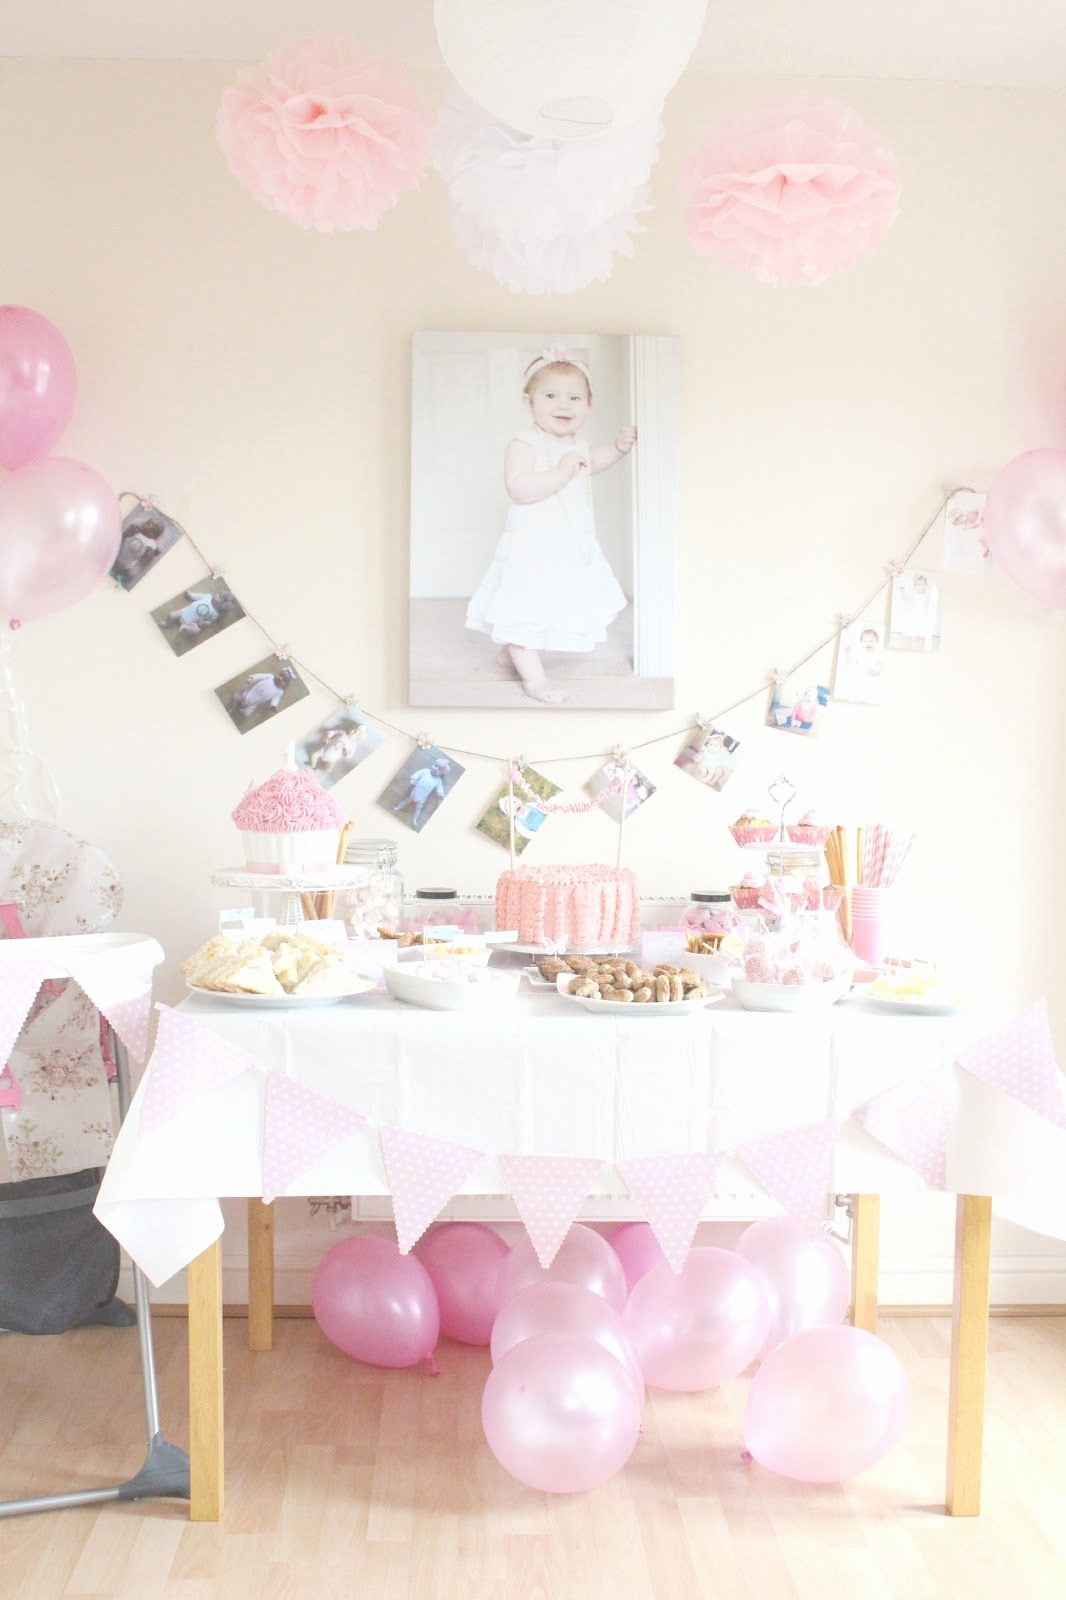 Baby Birthday Decoration Ideas at Home Lovely First Birthday Party & Decor Vintage Princess Inspired